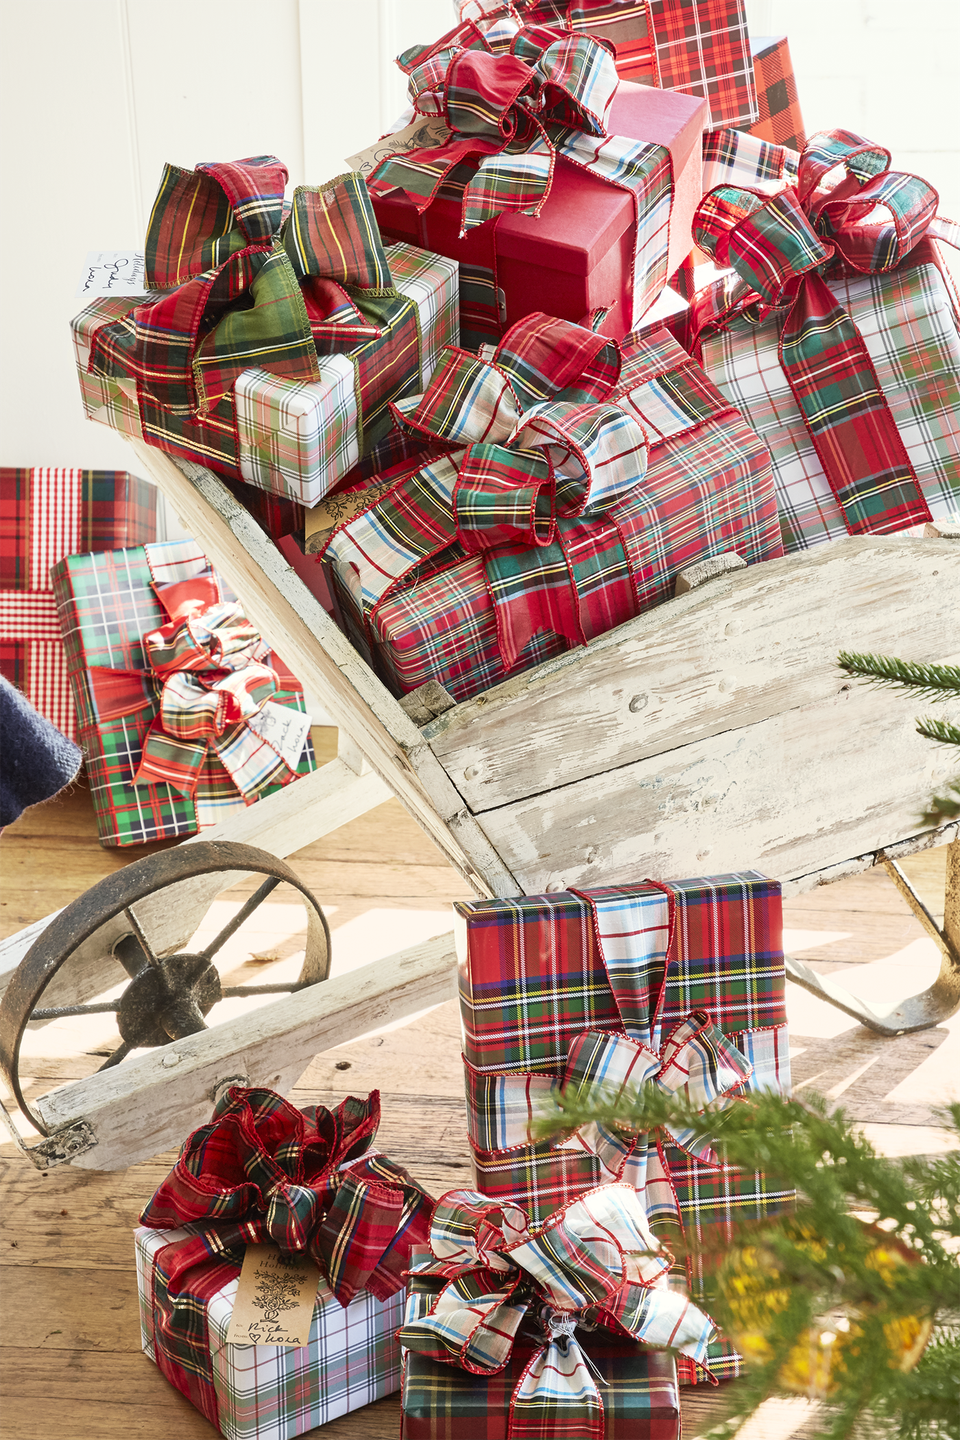 """<p>Wrap your gifts in different but matching patterns of plaid, and display them in a wheelbarrow adjacent to the Christmas tree. </p><p><a class=""""link rapid-noclick-resp"""" href=""""https://www.amazon.com/s/ref=nb_sb_noss_2?url=search-alias%3Dhpc&field-keywords=plaid+gift+wrap&tag=syn-yahoo-20&ascsubtag=%5Bartid%7C10050.g.1247%5Bsrc%7Cyahoo-us"""" rel=""""nofollow noopener"""" target=""""_blank"""" data-ylk=""""slk:SHOP PLAID GIFT WRAP"""">SHOP PLAID GIFT WRAP</a></p>"""